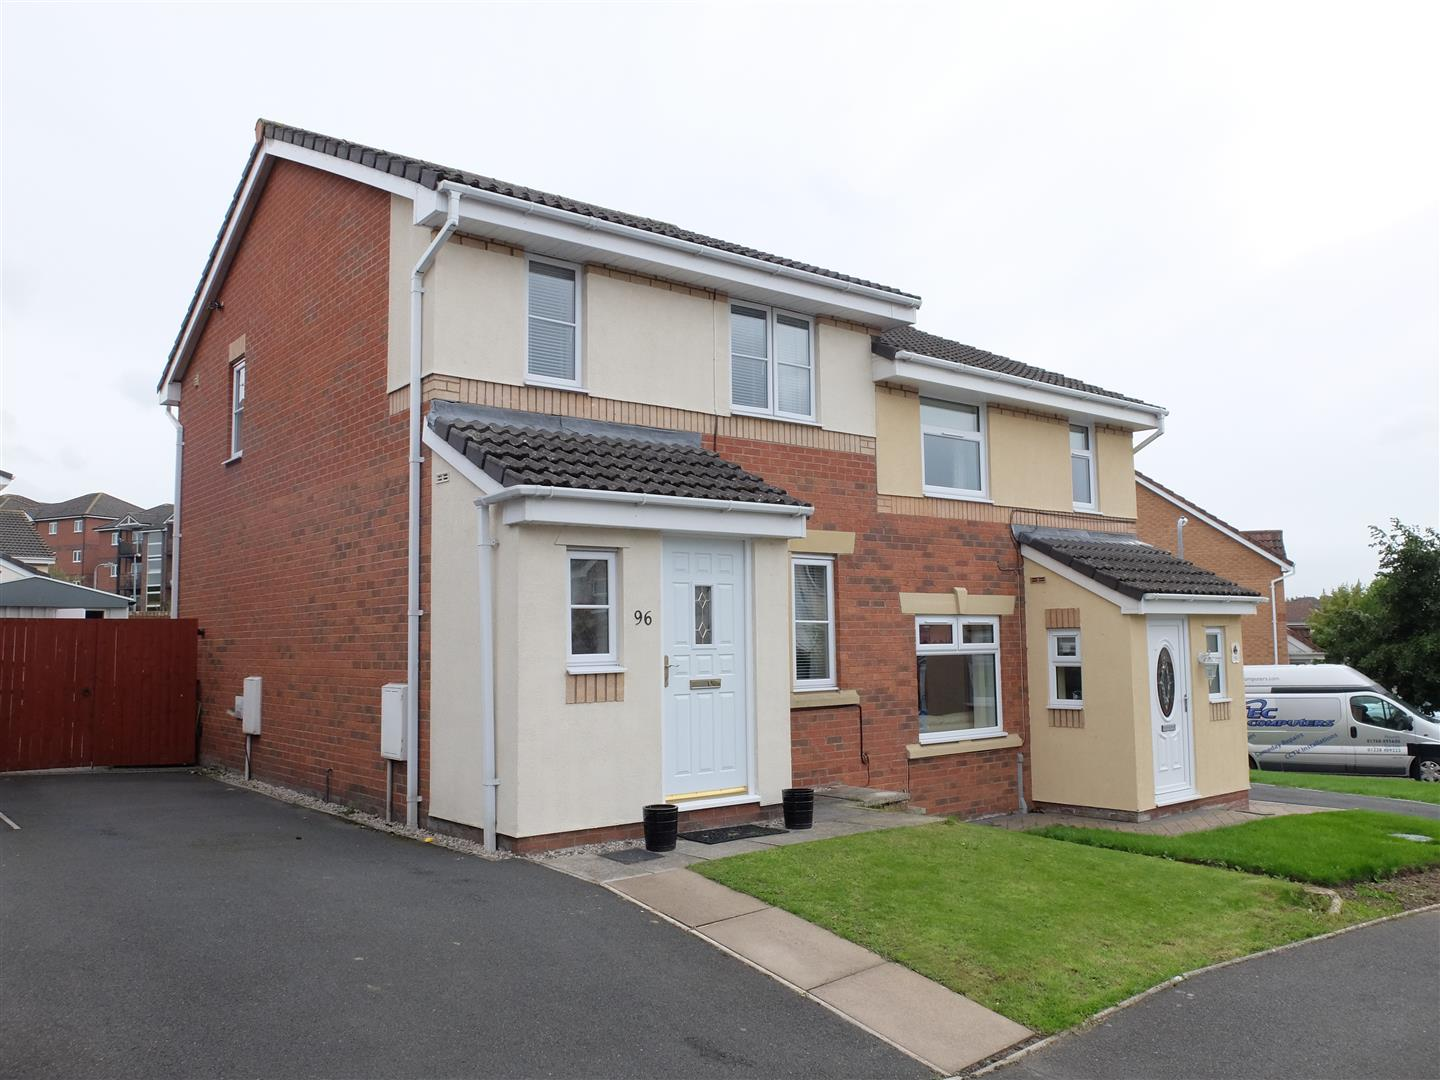 96 Valley Drive Carlisle 3 Bedrooms House - Semi-Detached For Sale